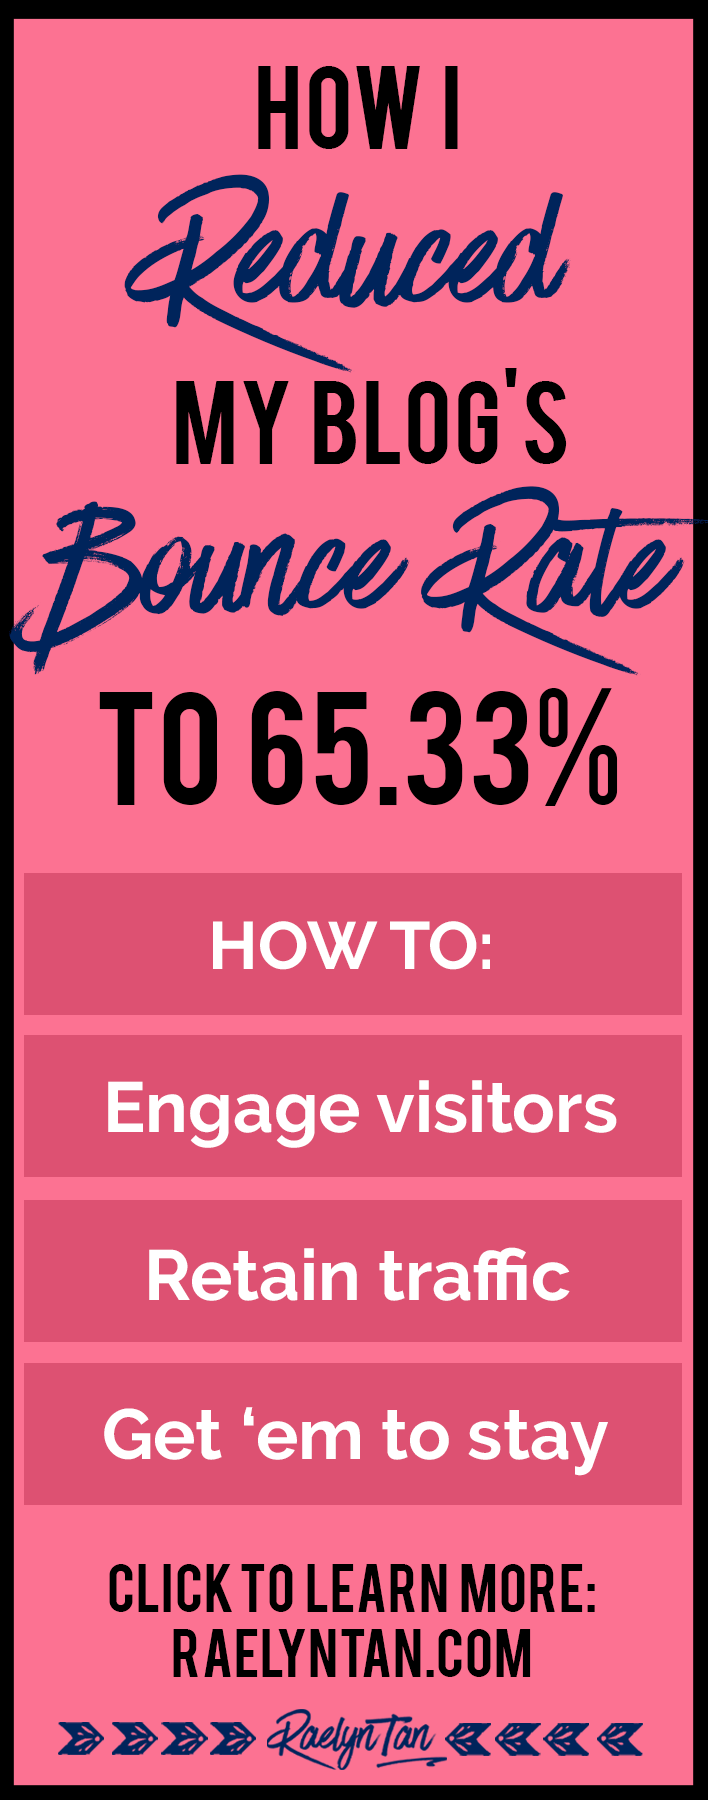 5 Powerful Ninja Tricks That Reduced My Blog's Bounce Rate to 65.33%